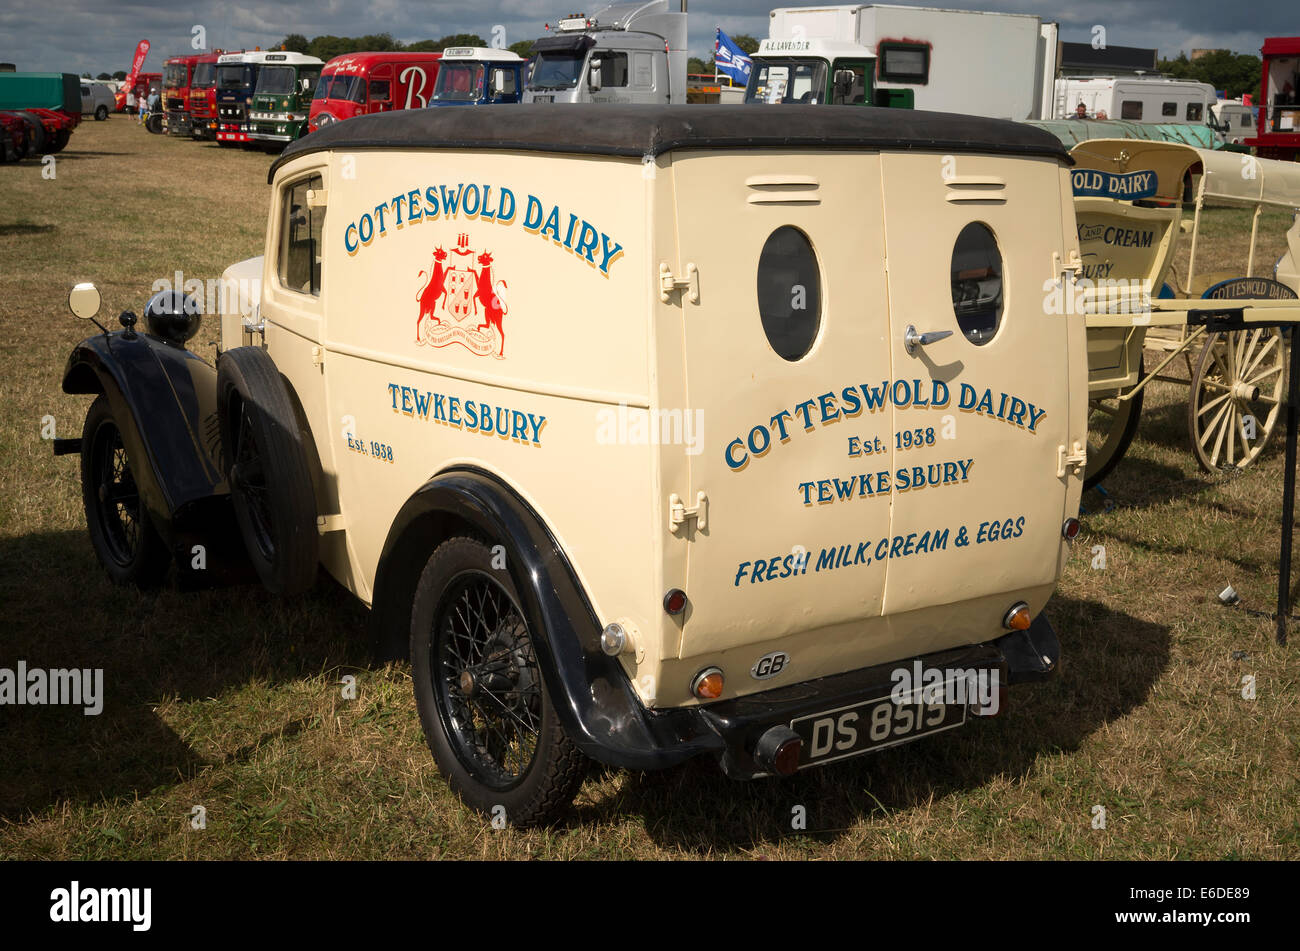 2e4ccdf7e1 1930s Morris 8 Van operated by Cotteswold Dairy - Stock Image